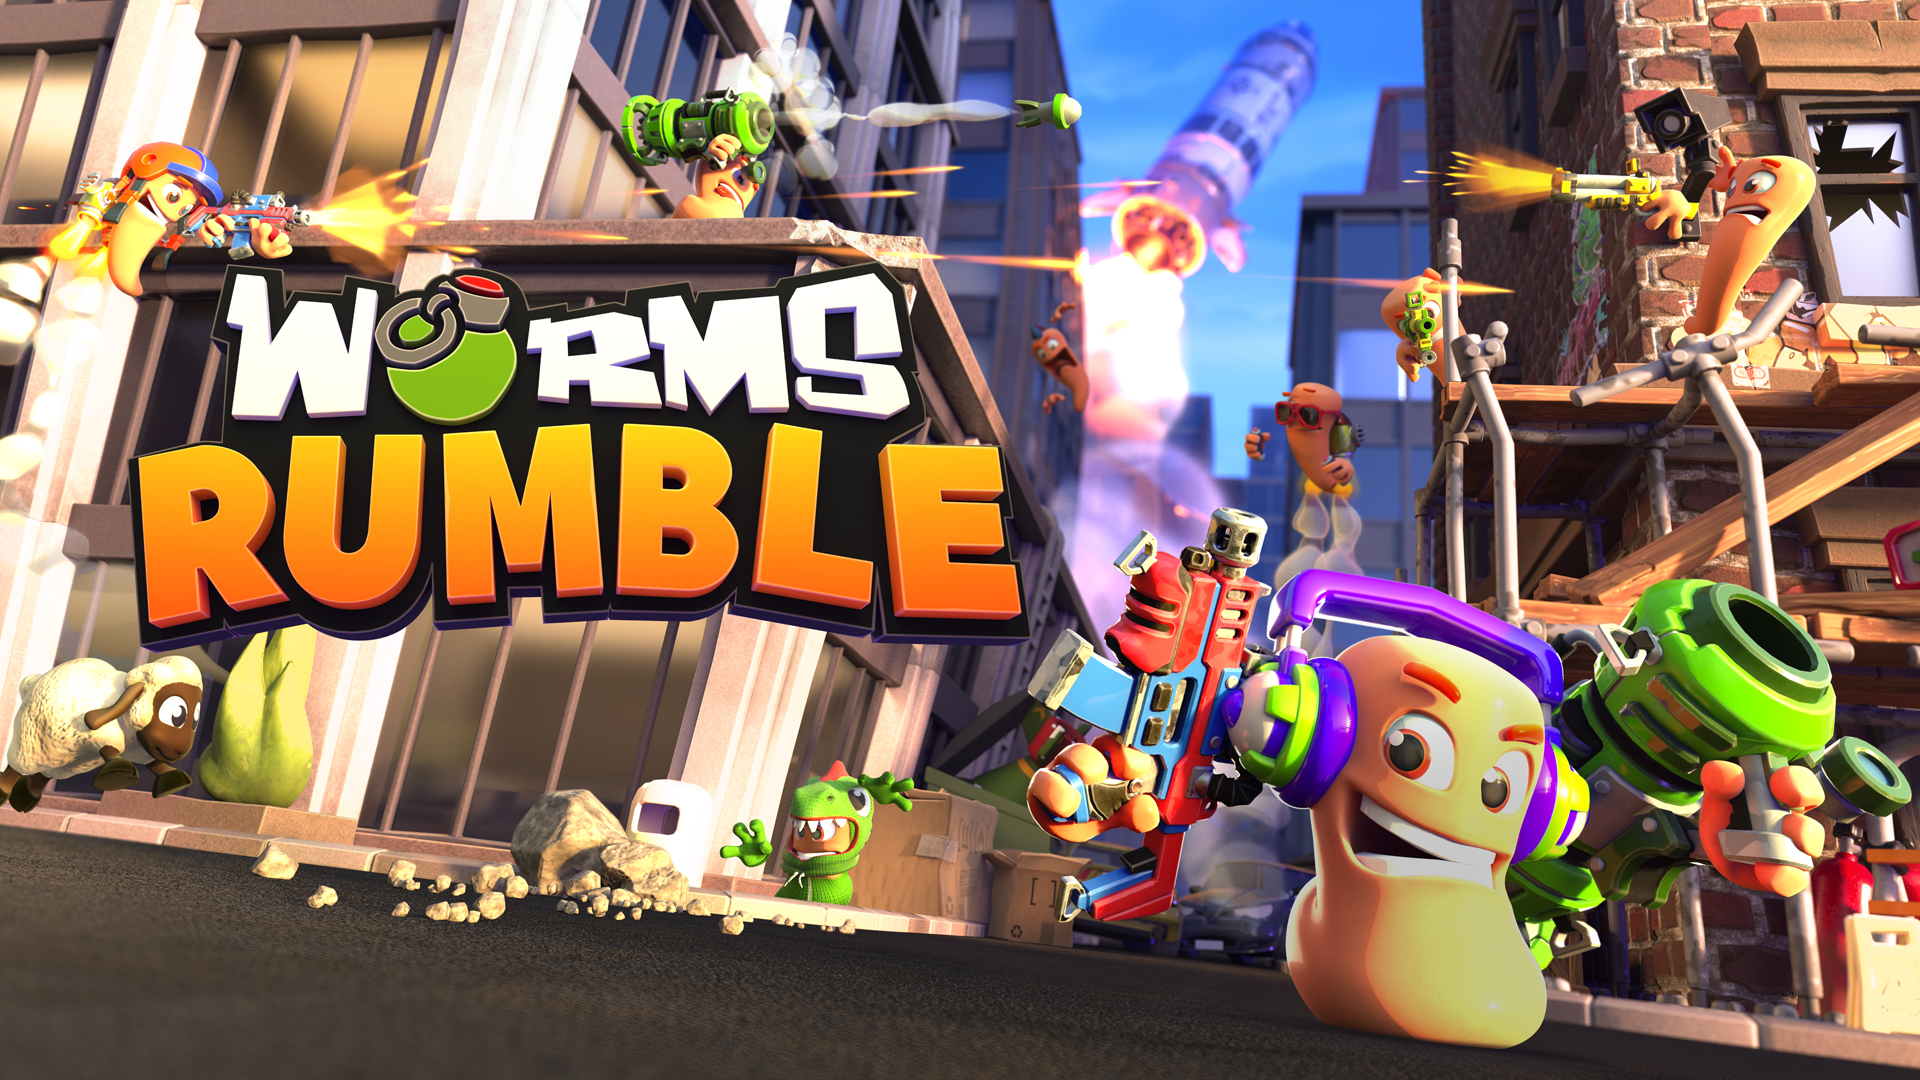 Introducing Worms Rumble!